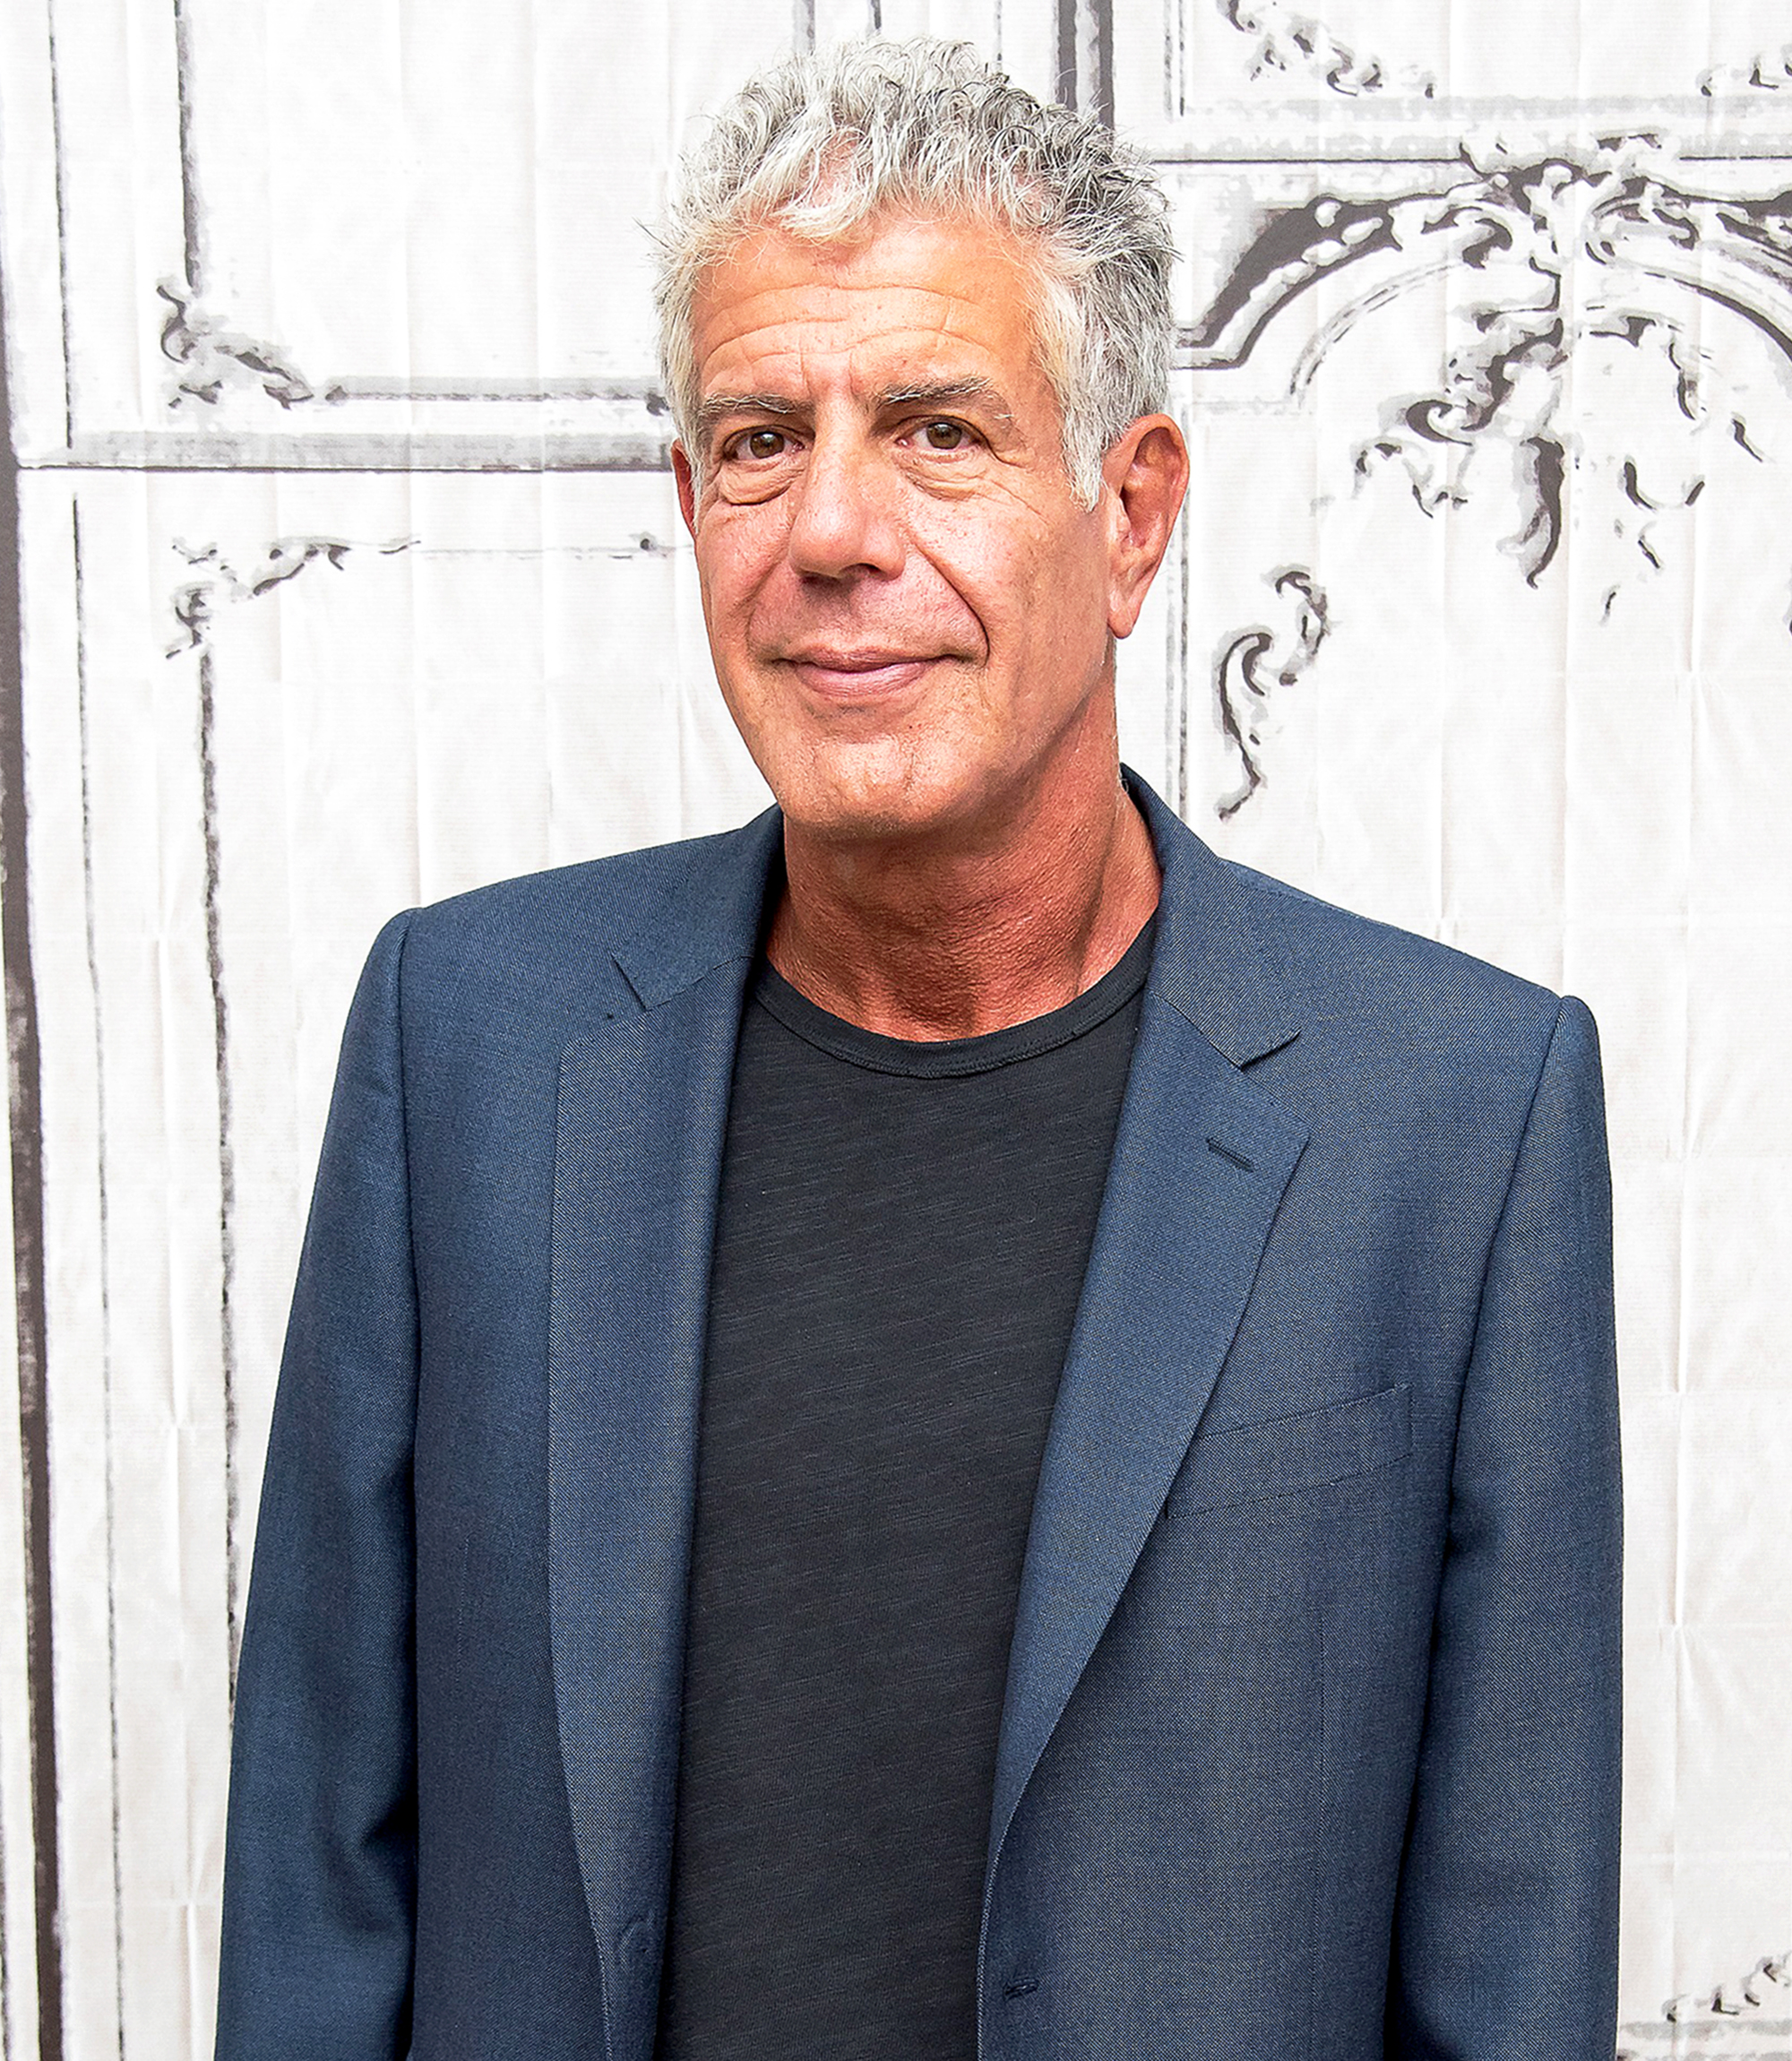 Anthony Bourdain had no narcotics in system when he died